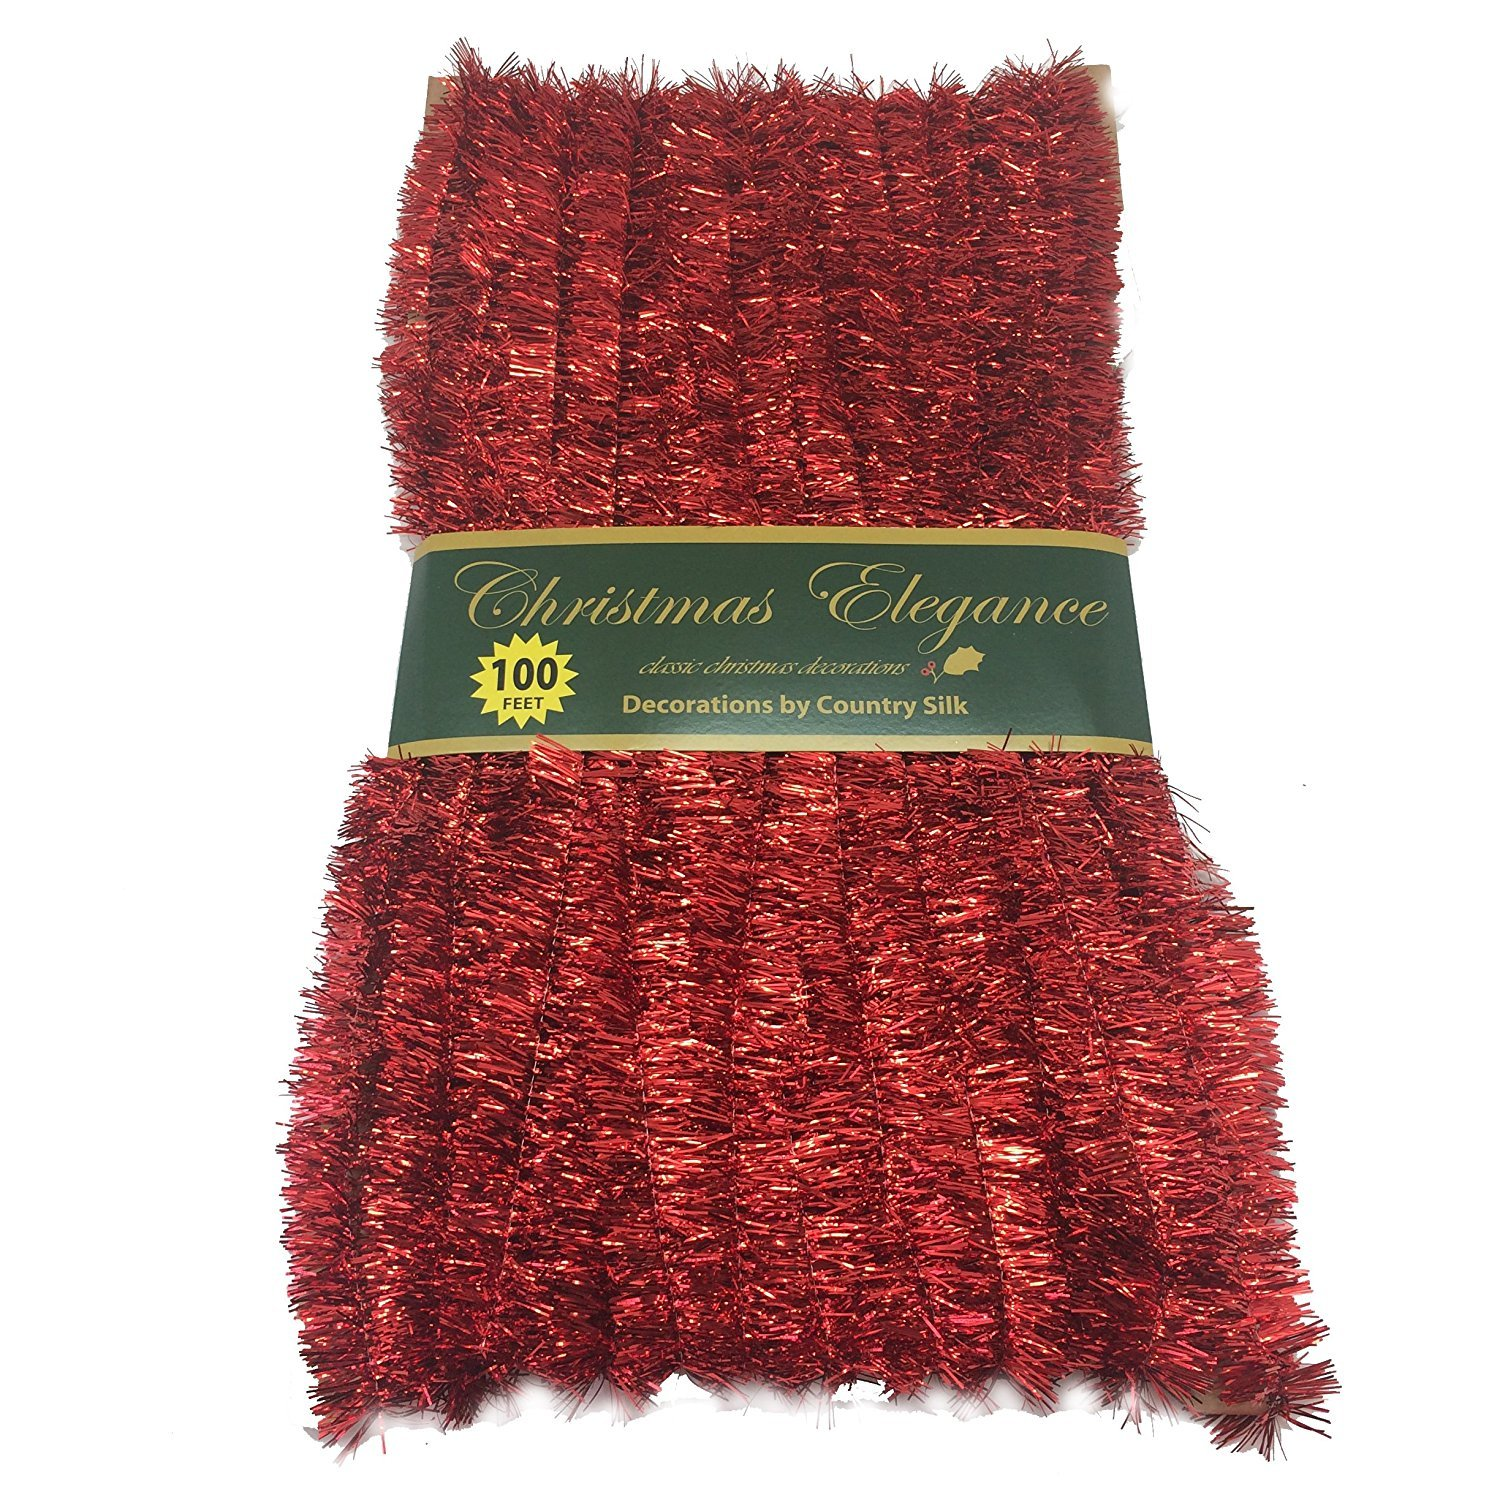 100 FT Commercial Length Christmas Garland Classic Christmas Decorations, Red Christmas Elegance